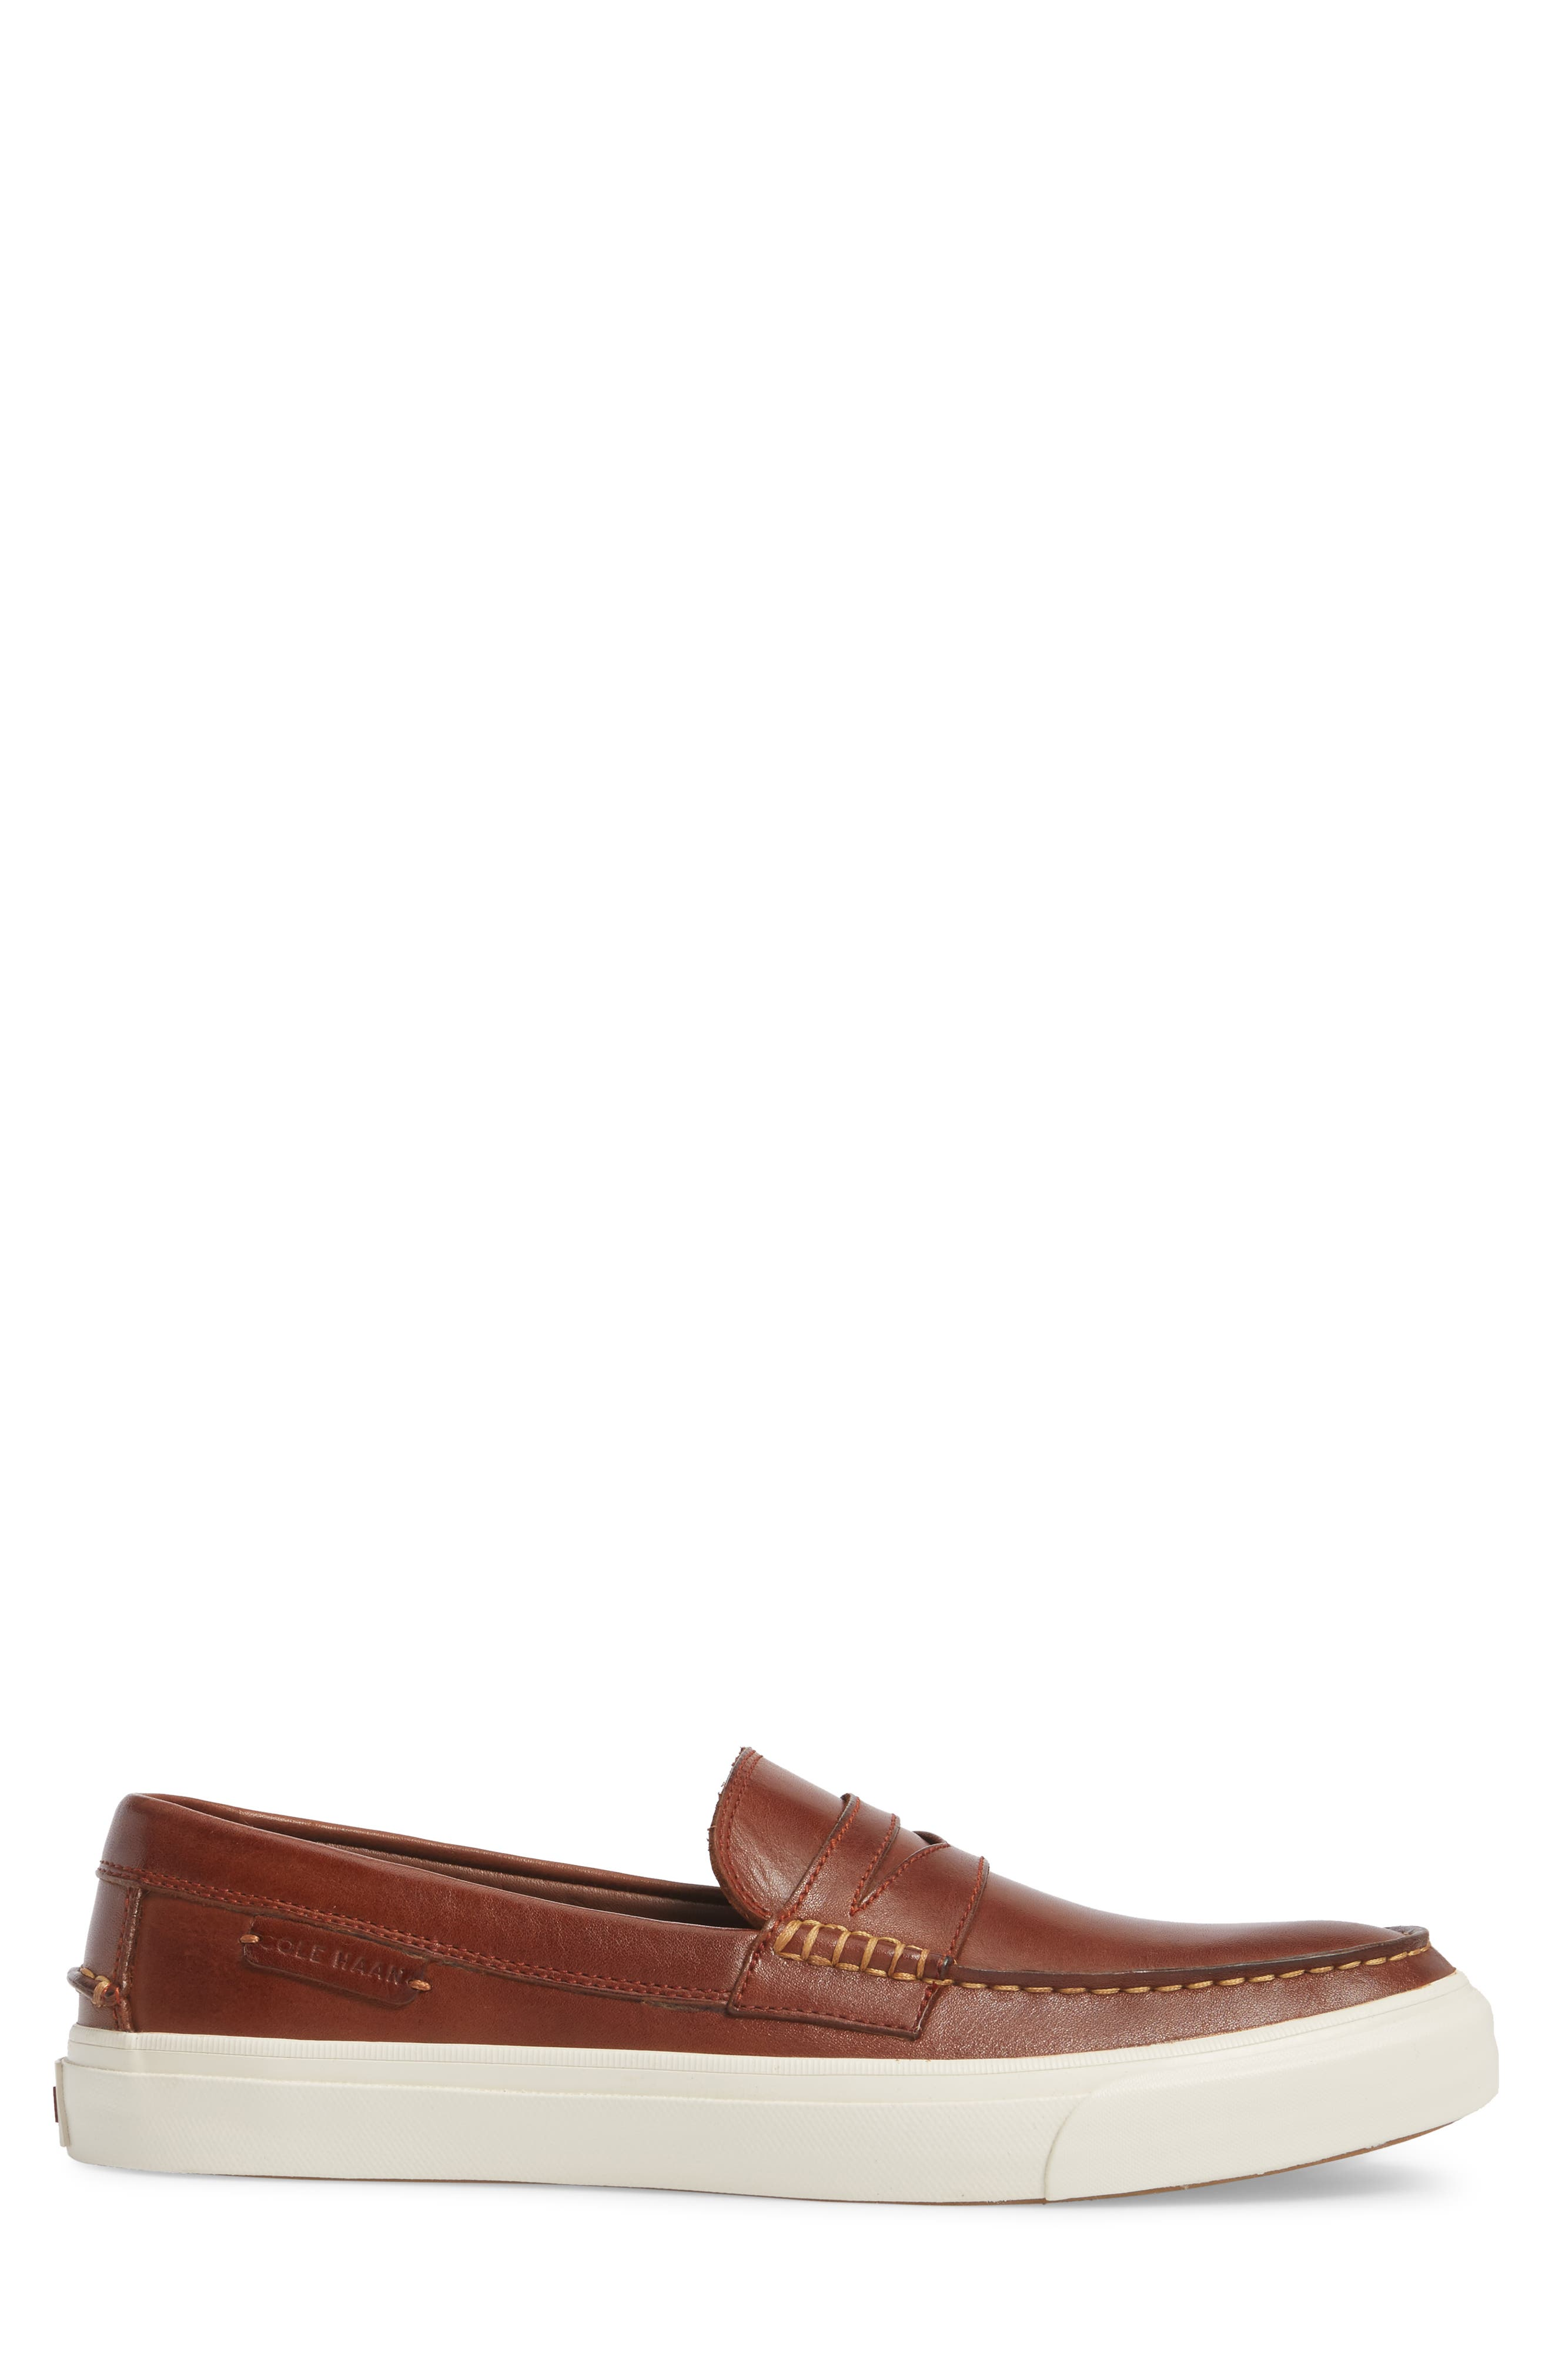 Pinch Weekend LX Penny Loafer,                             Alternate thumbnail 24, color,